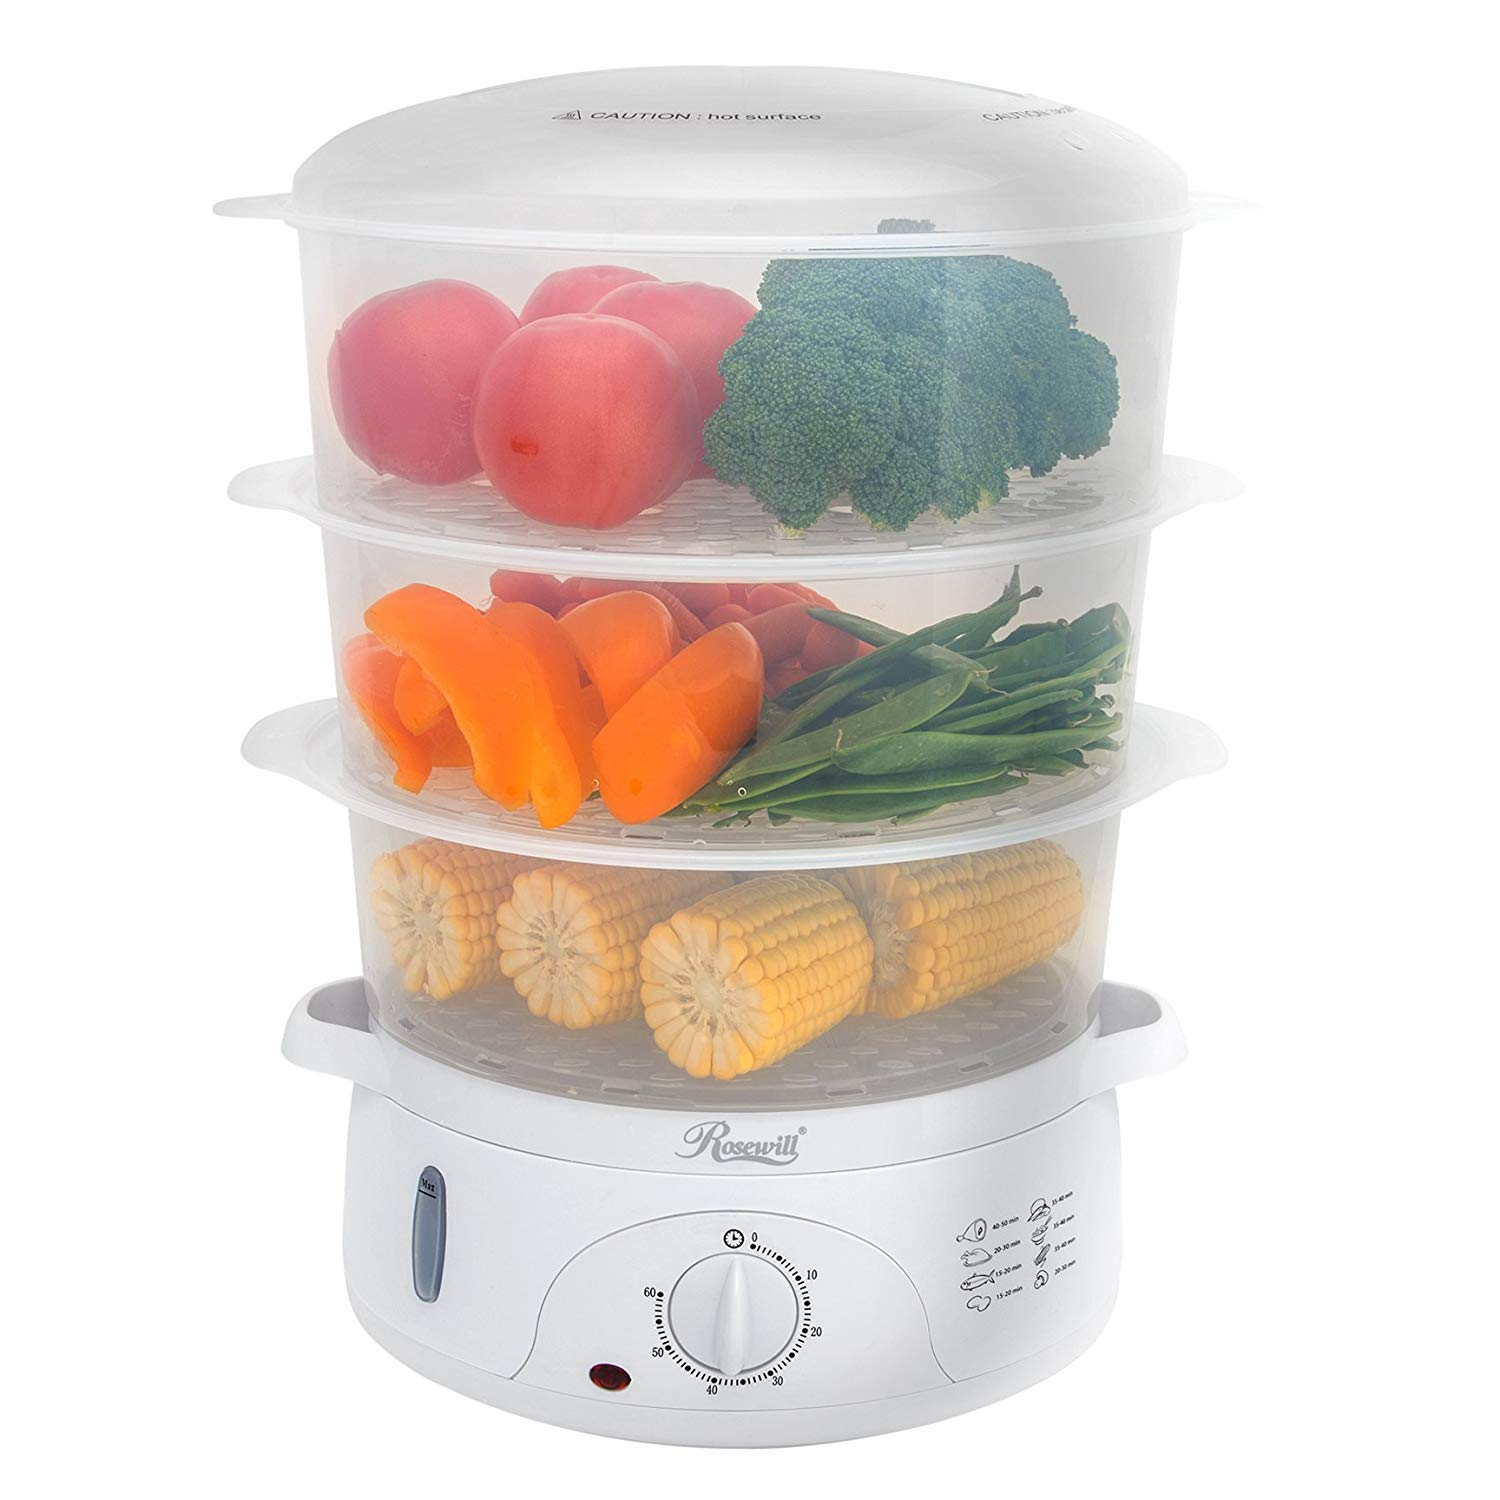 Rosewill Electric Food Steamer 9.5 Quart Vegetable Steamer